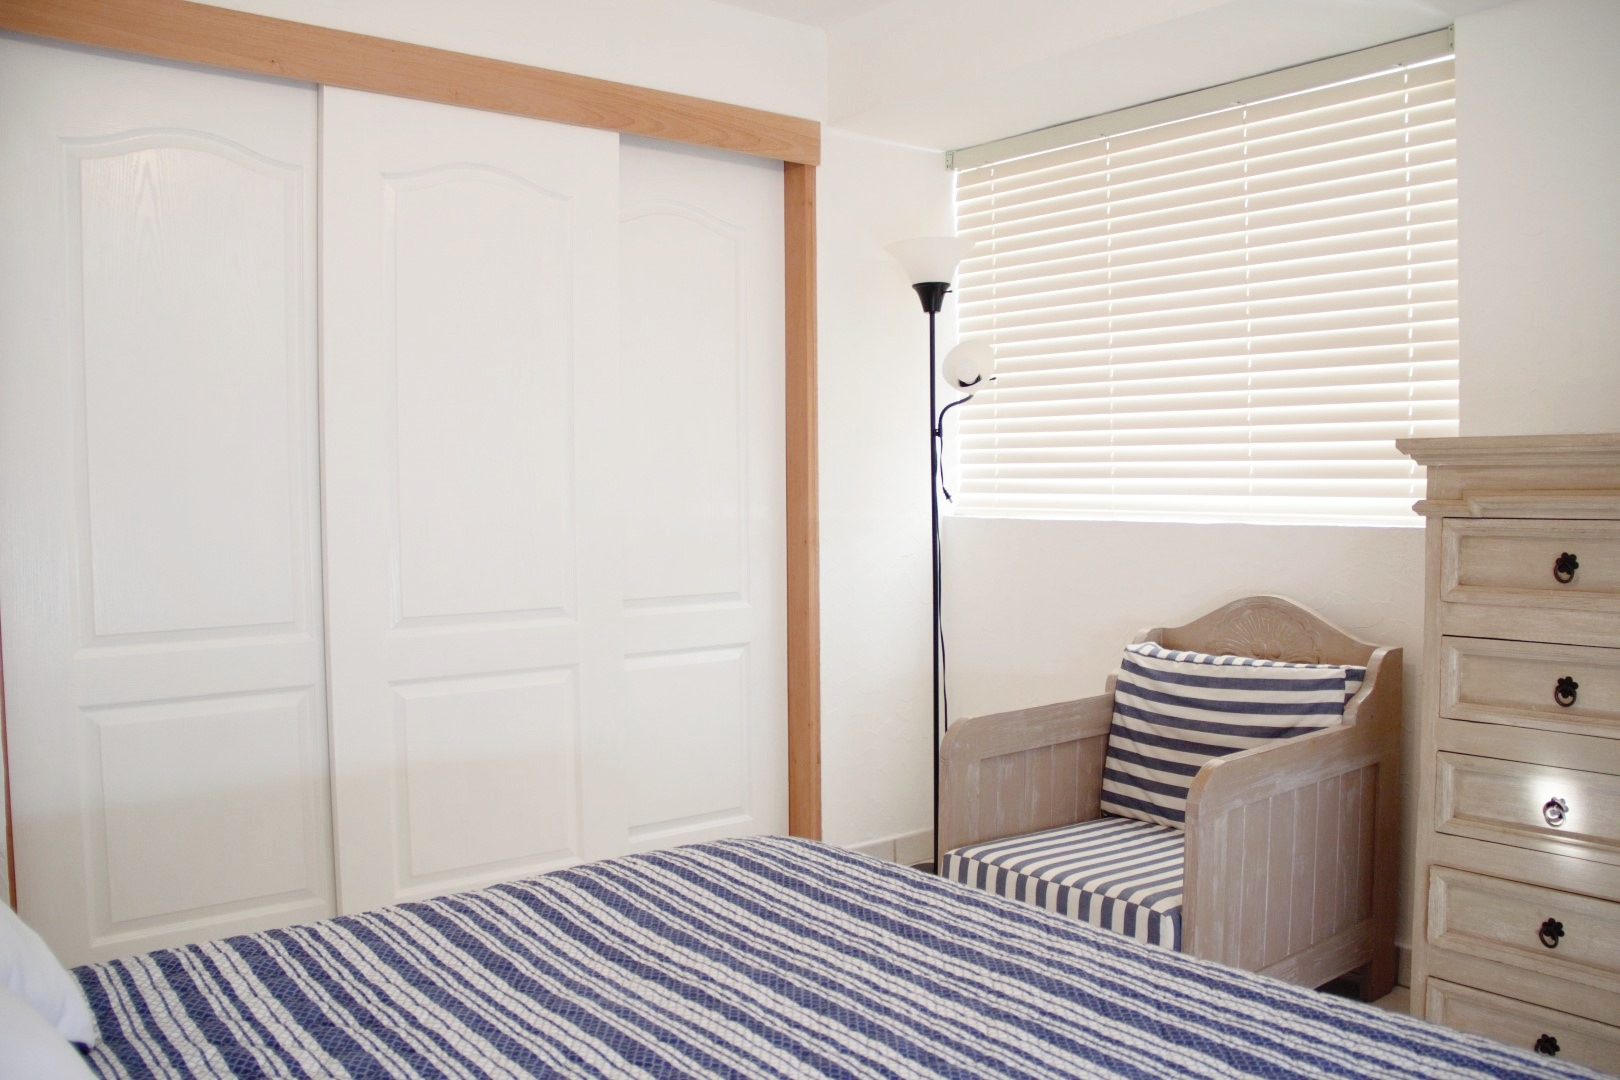 Second bedroom with large closet.